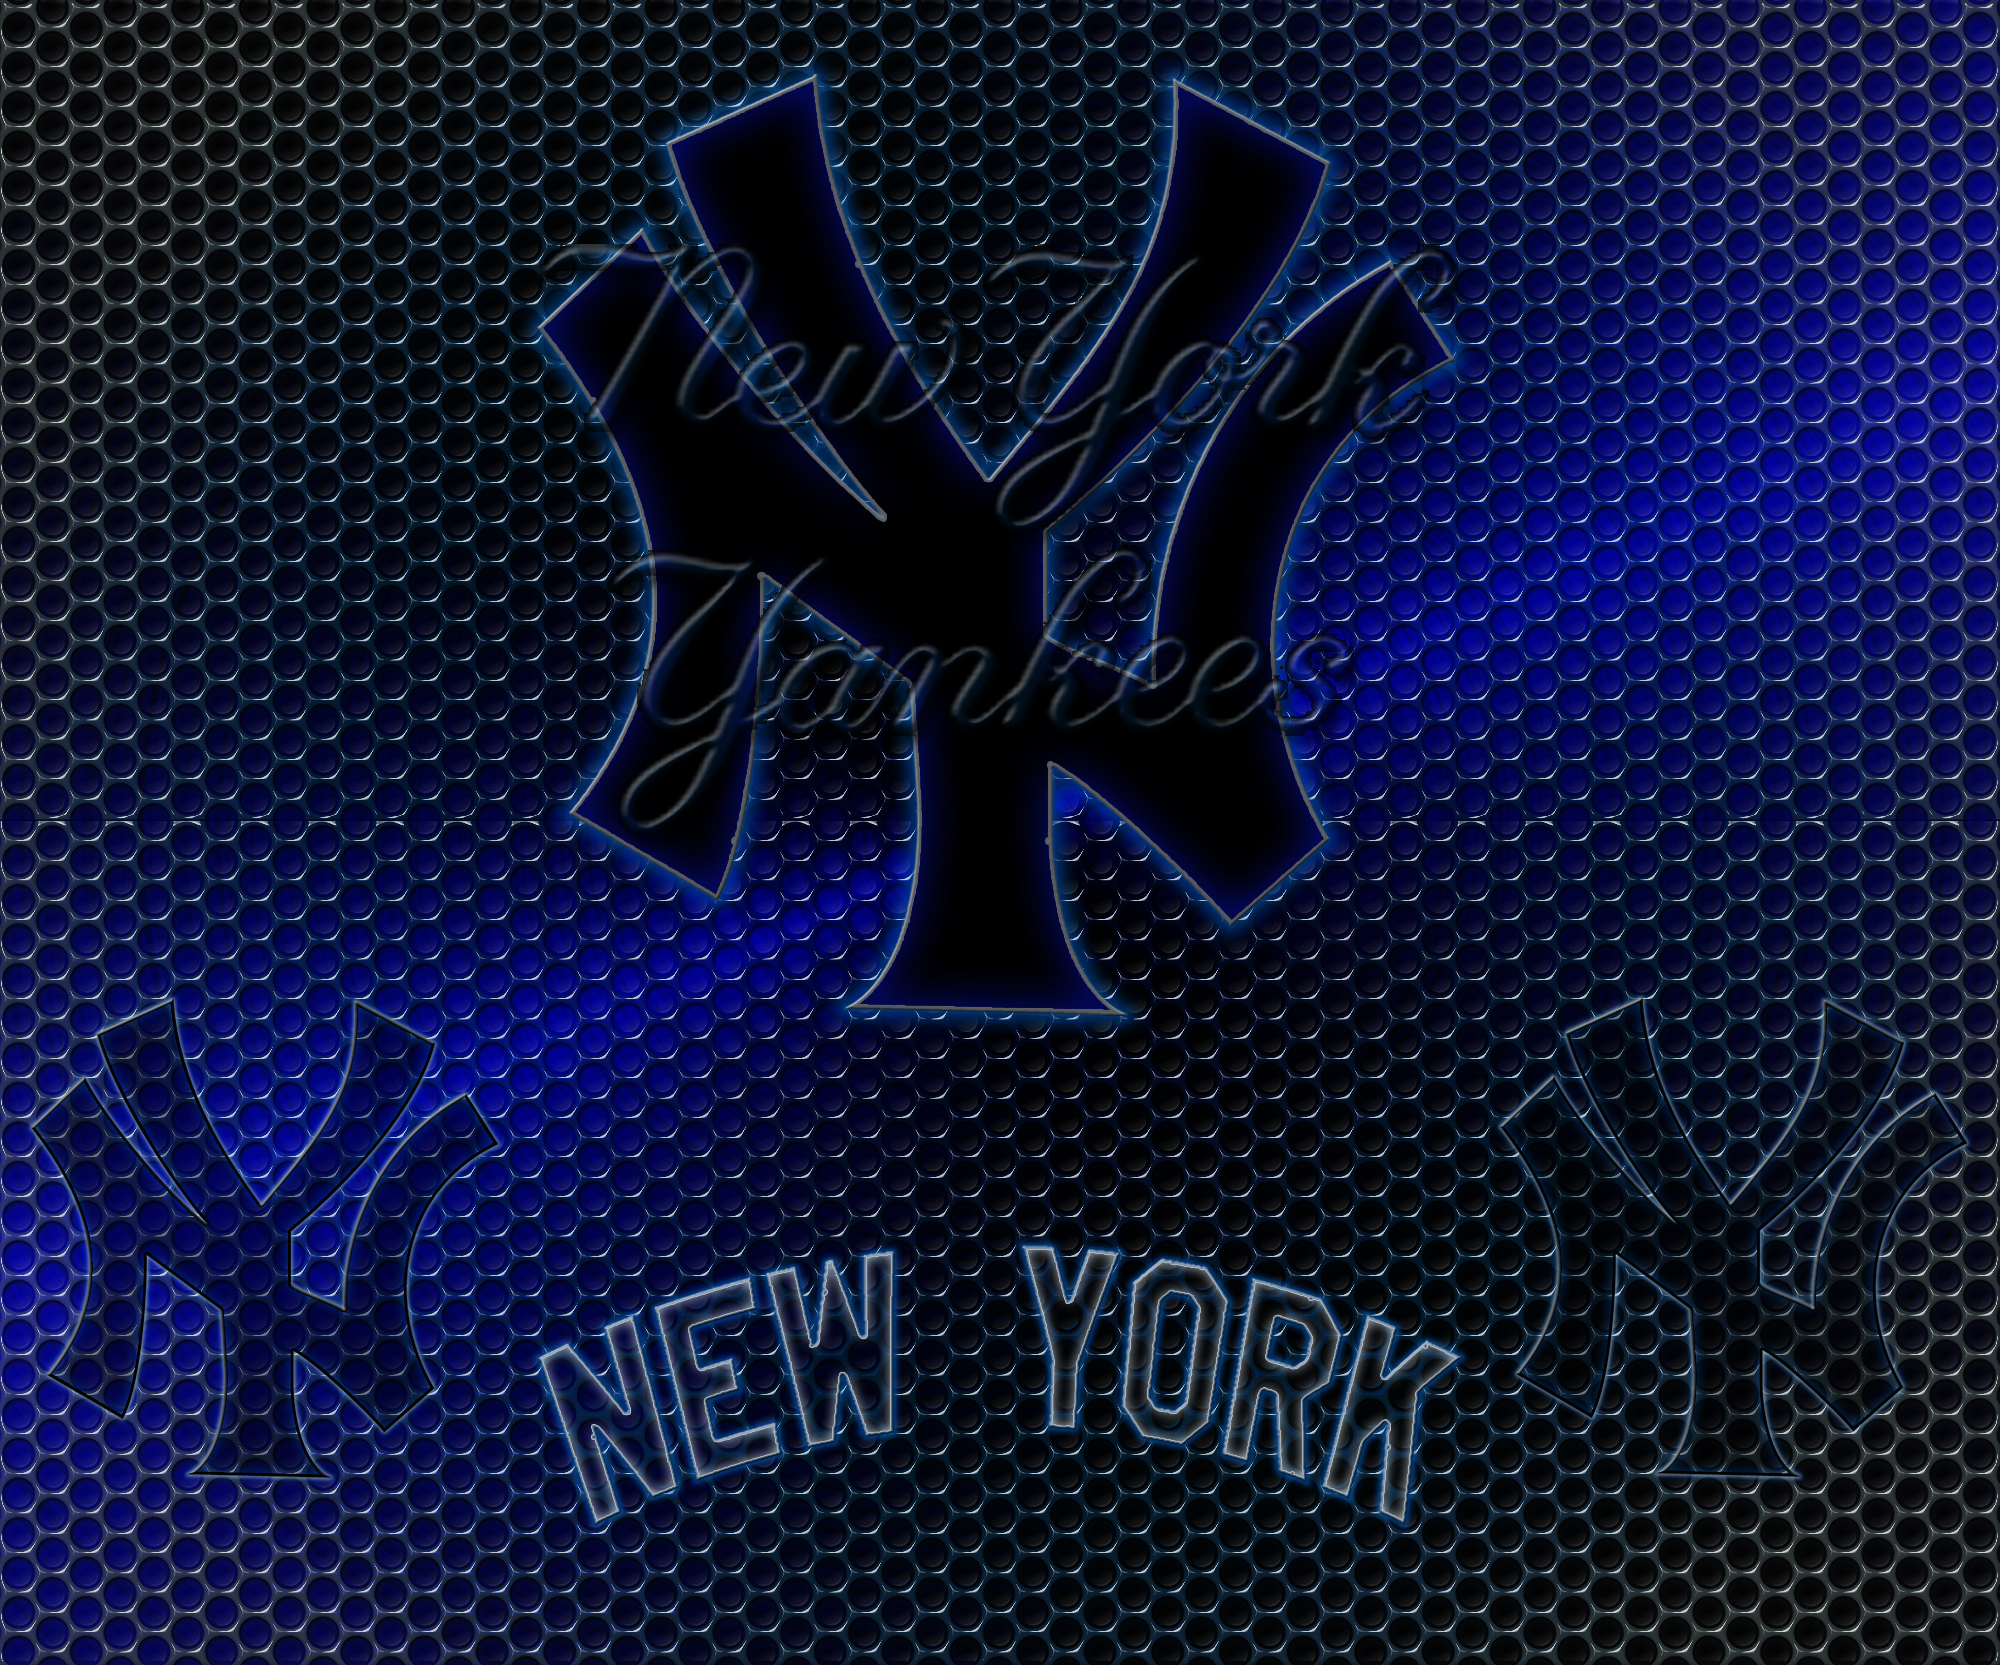 Yankees Logo Wallpaper Cake Ideas and Designs 2000x1665